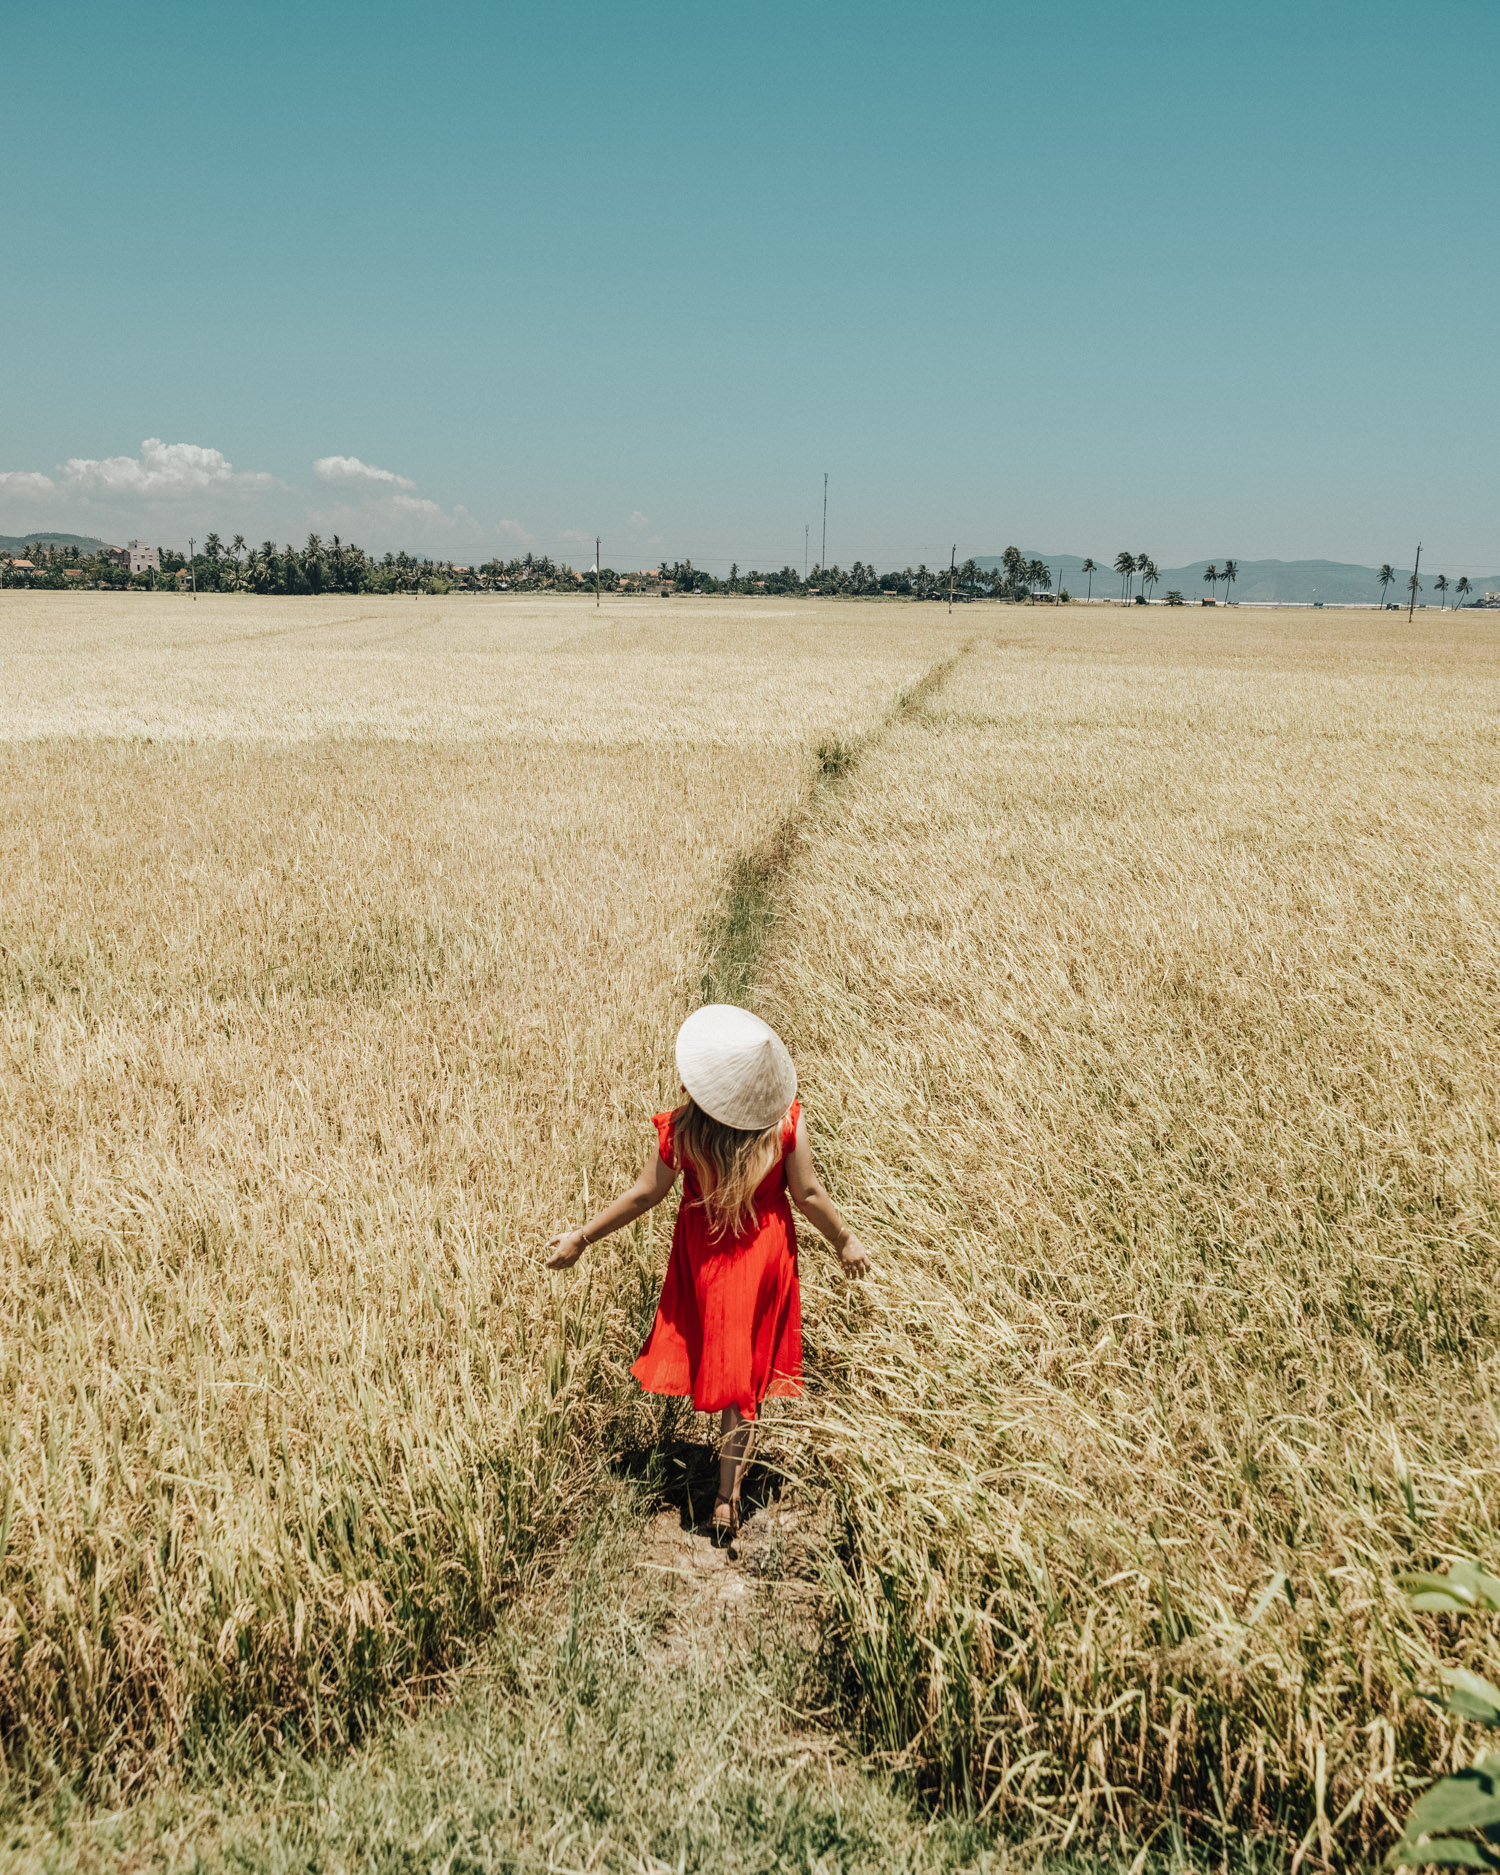 Phu Yen, Girl in red dress walking on path through wheat field in Vietnam